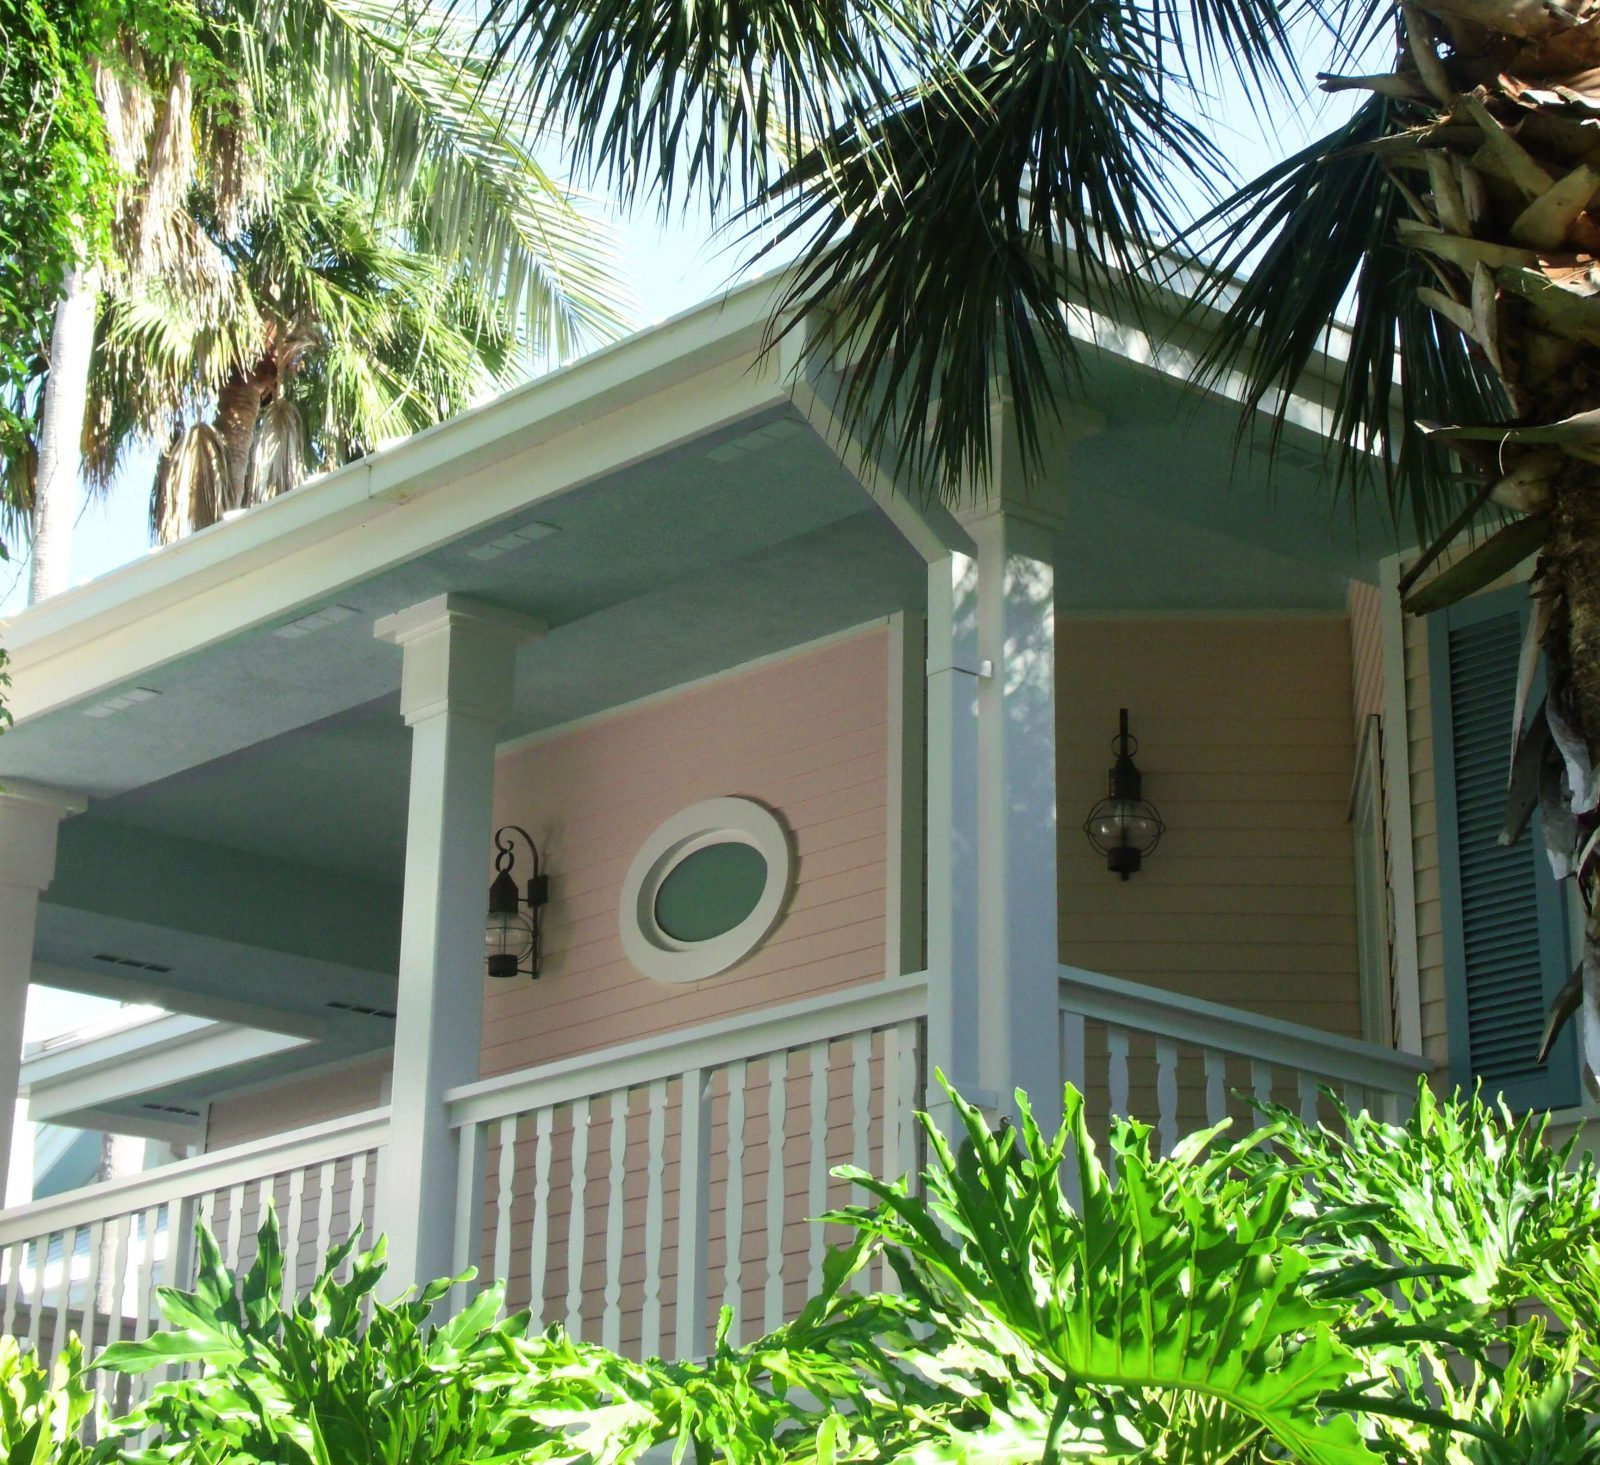 exterior view of disney's old key west resort room